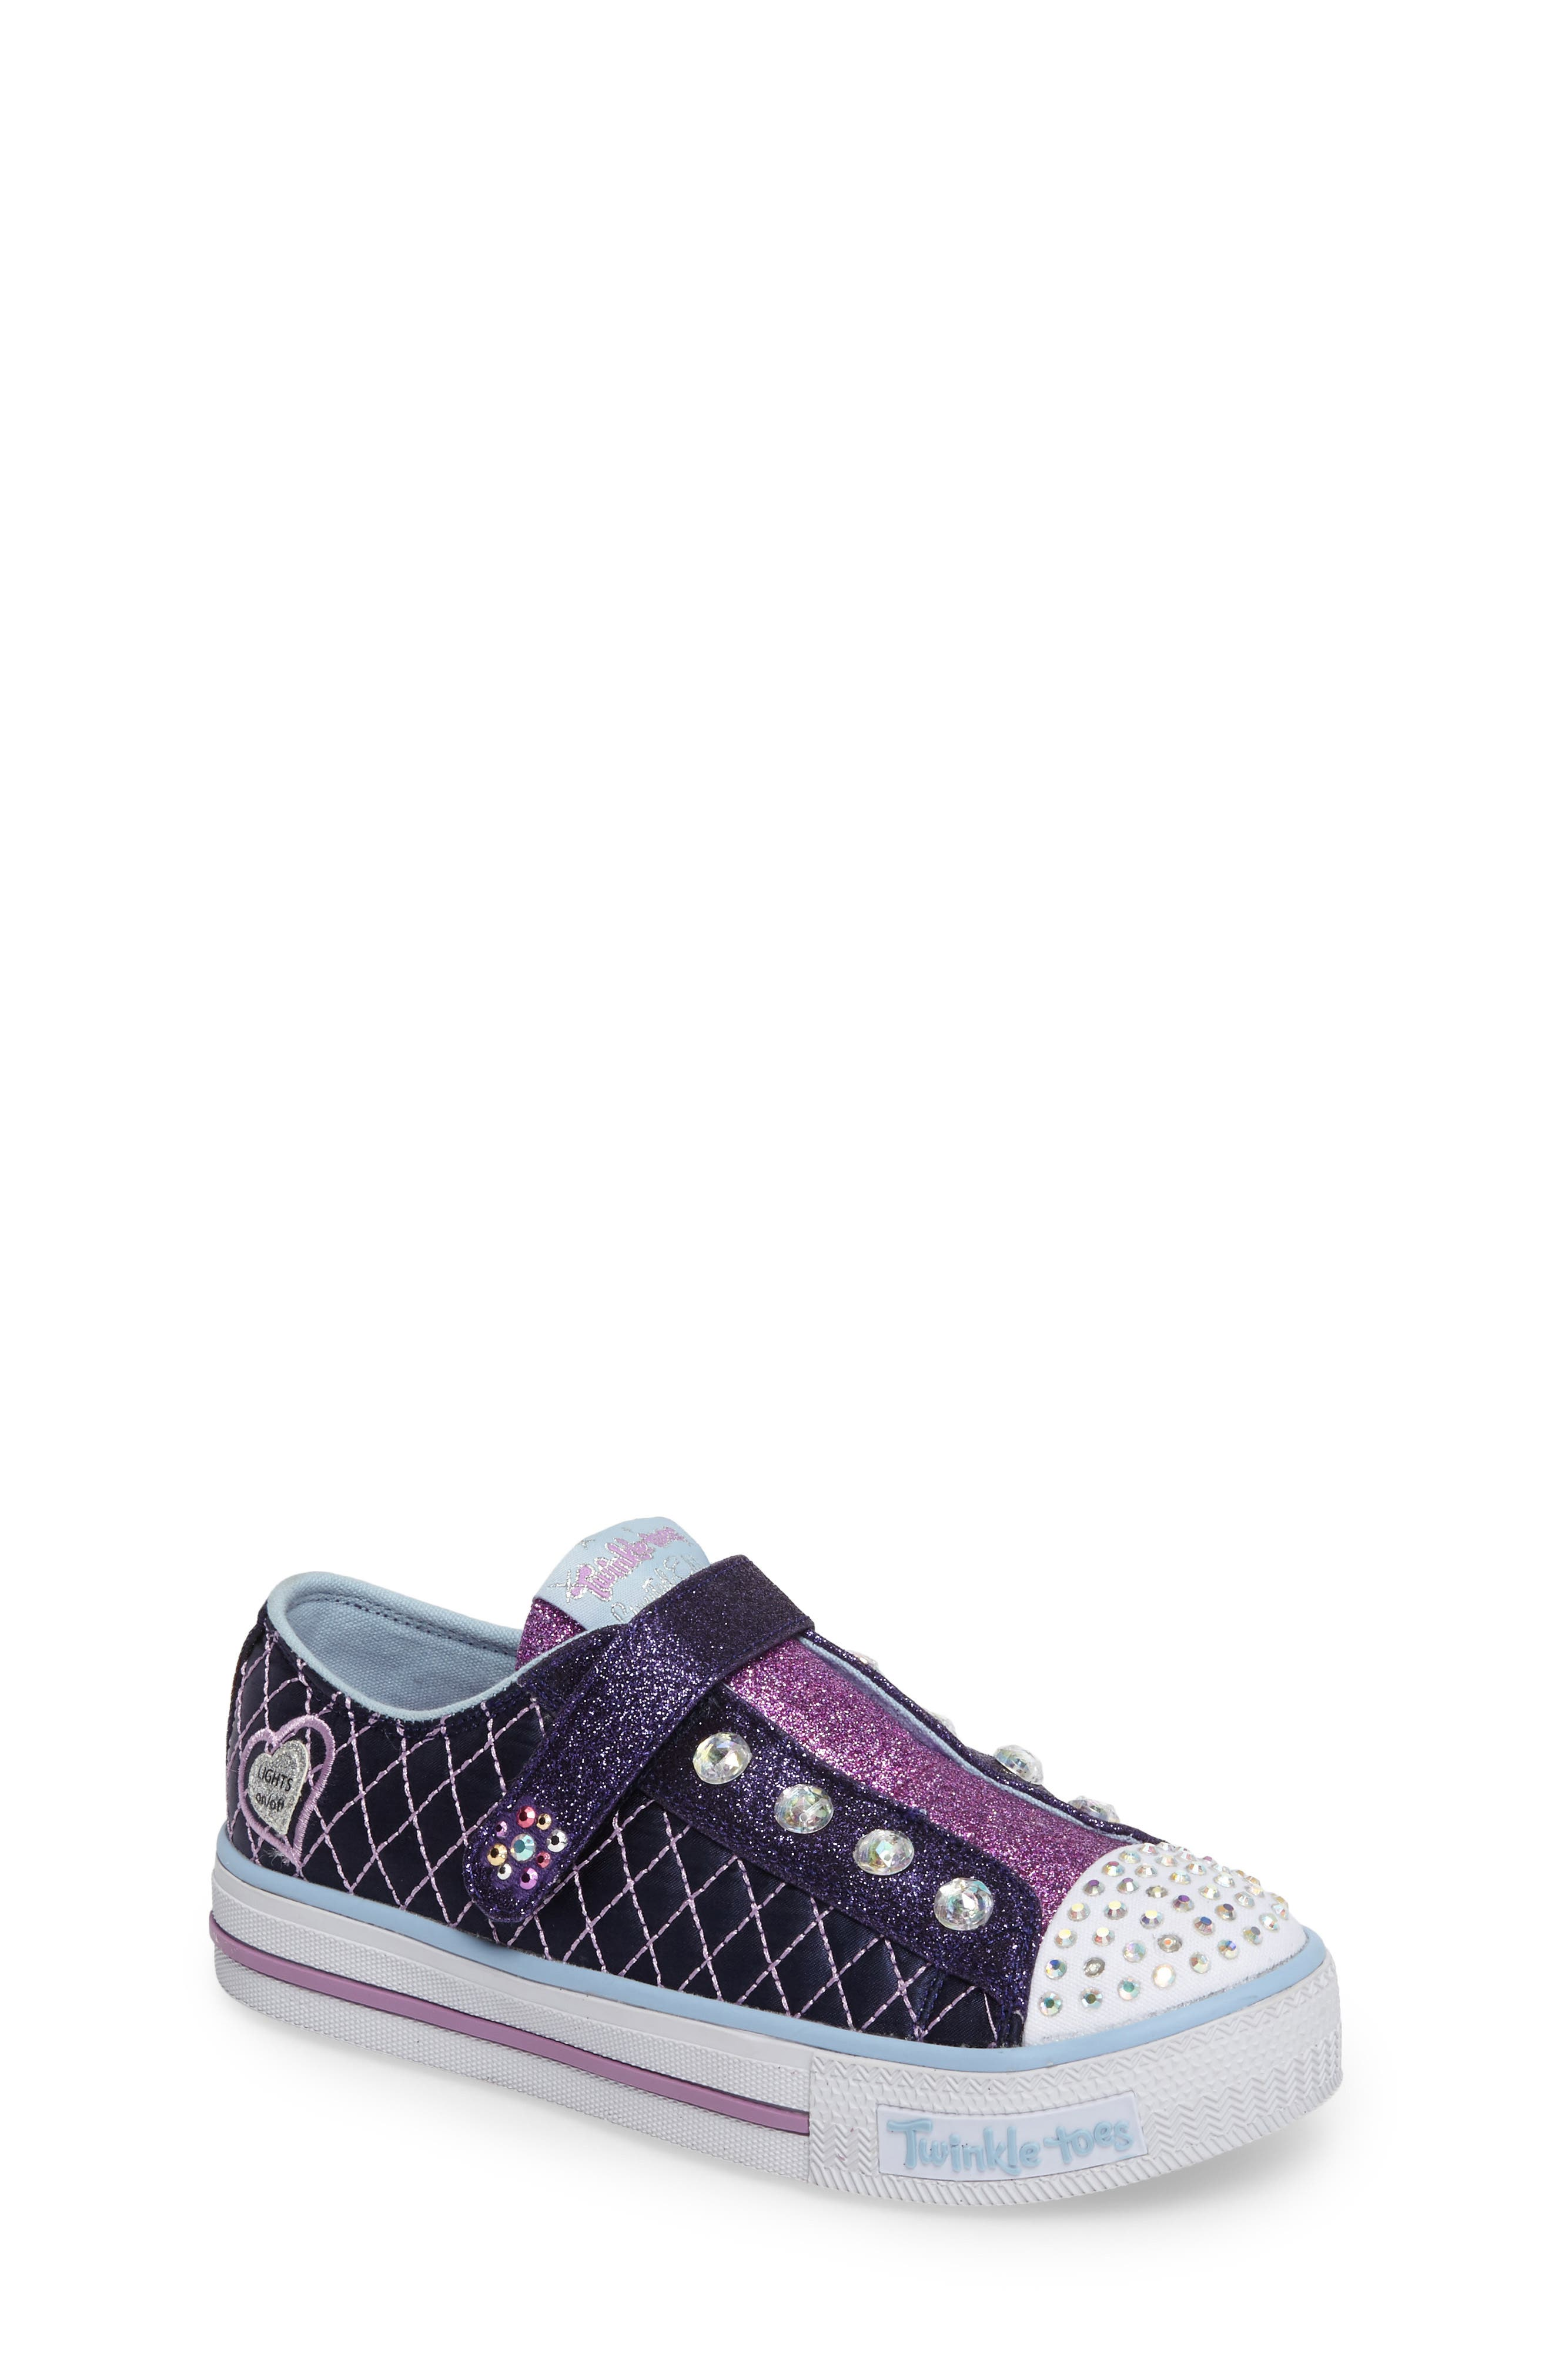 SKECHERS Twinkle Toes Shuffles Sparkly Jewels Light-Up Sneaker (Toddler & Little Kid)